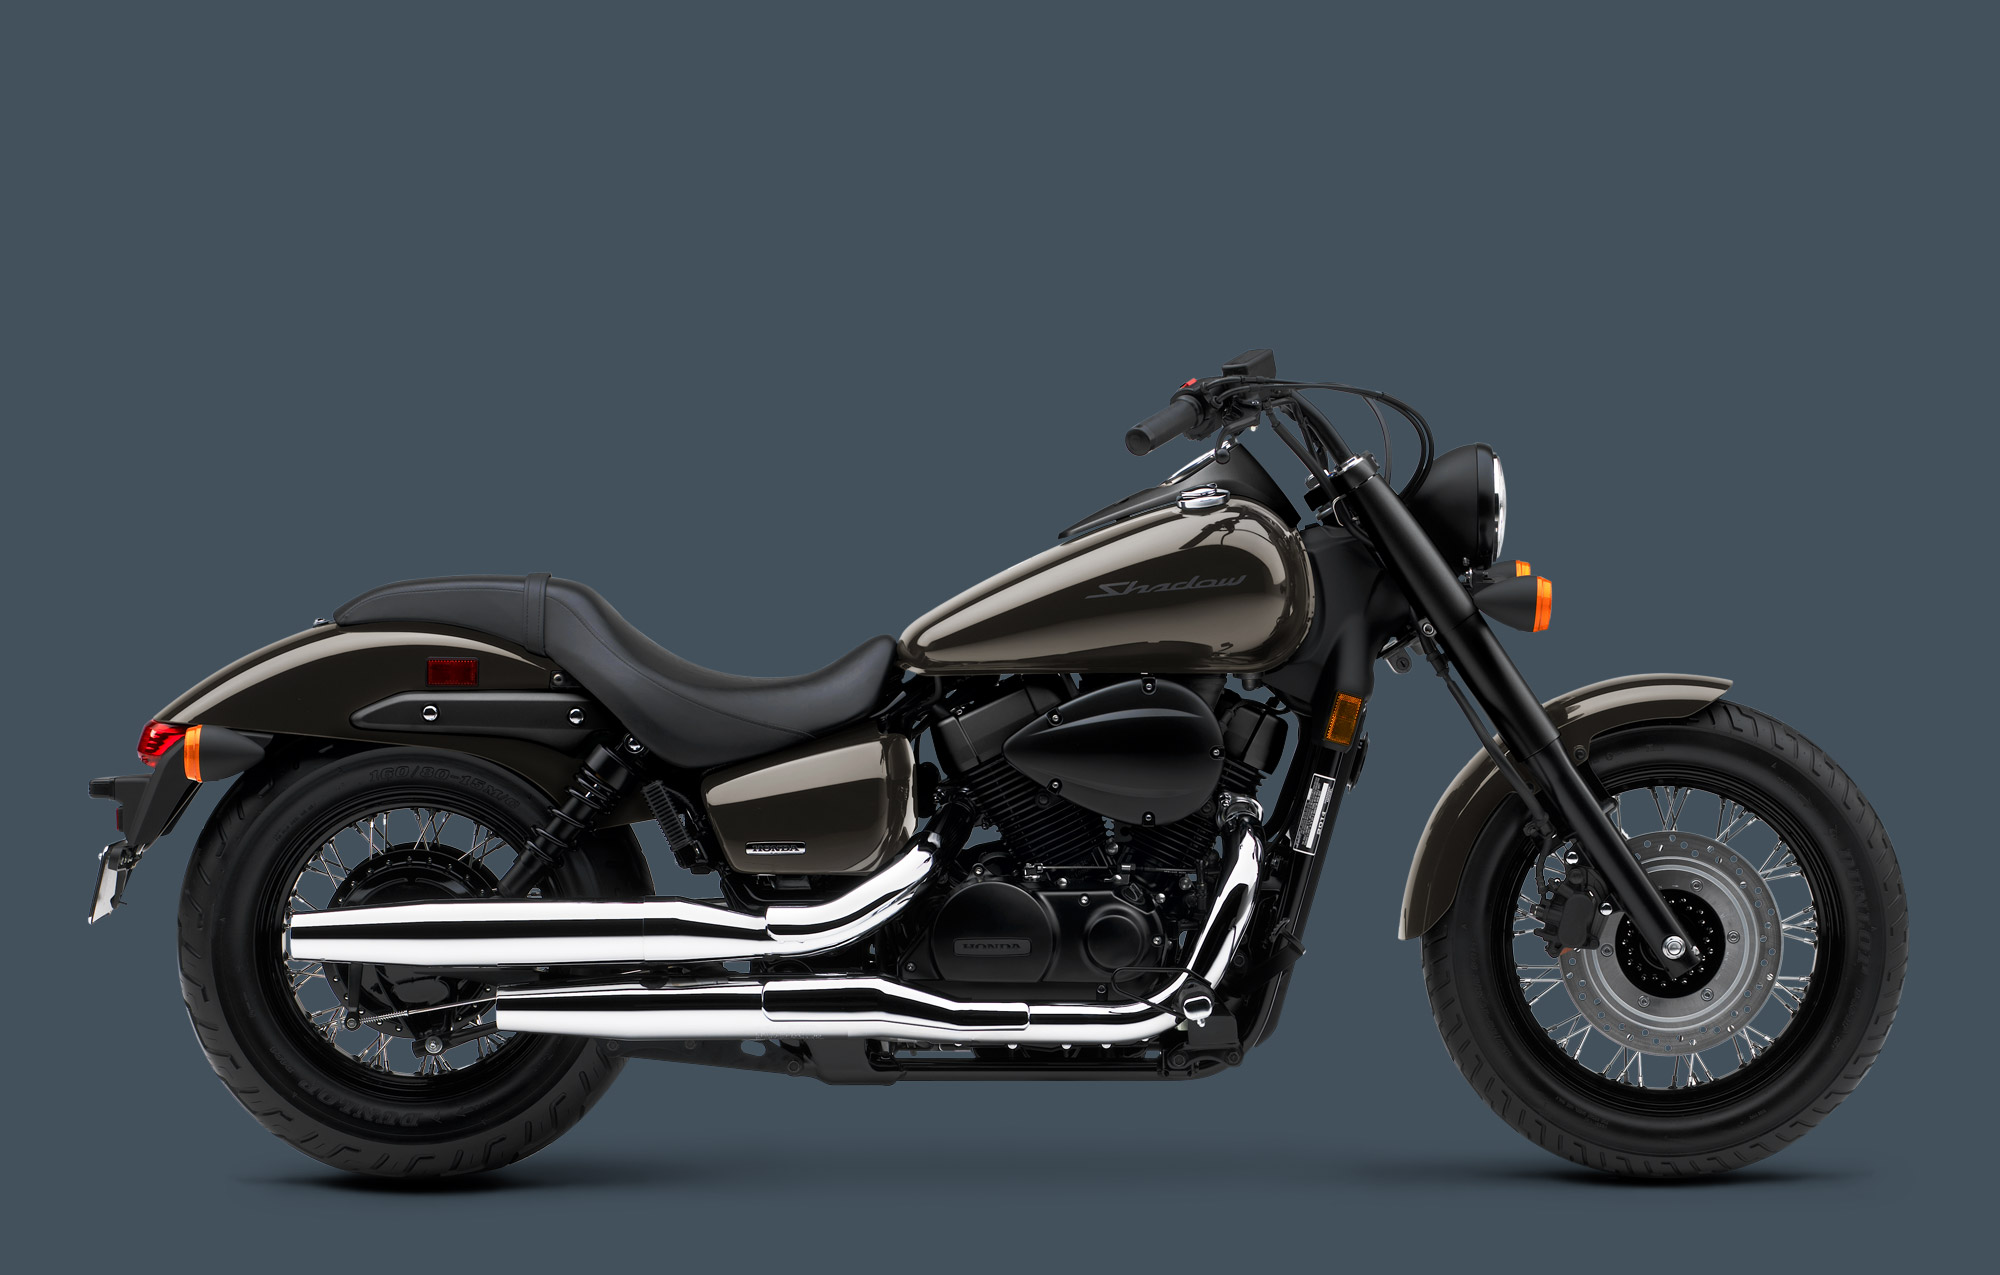 2014 Honda Shadow Phantom A Middleweight Cruiser We Like